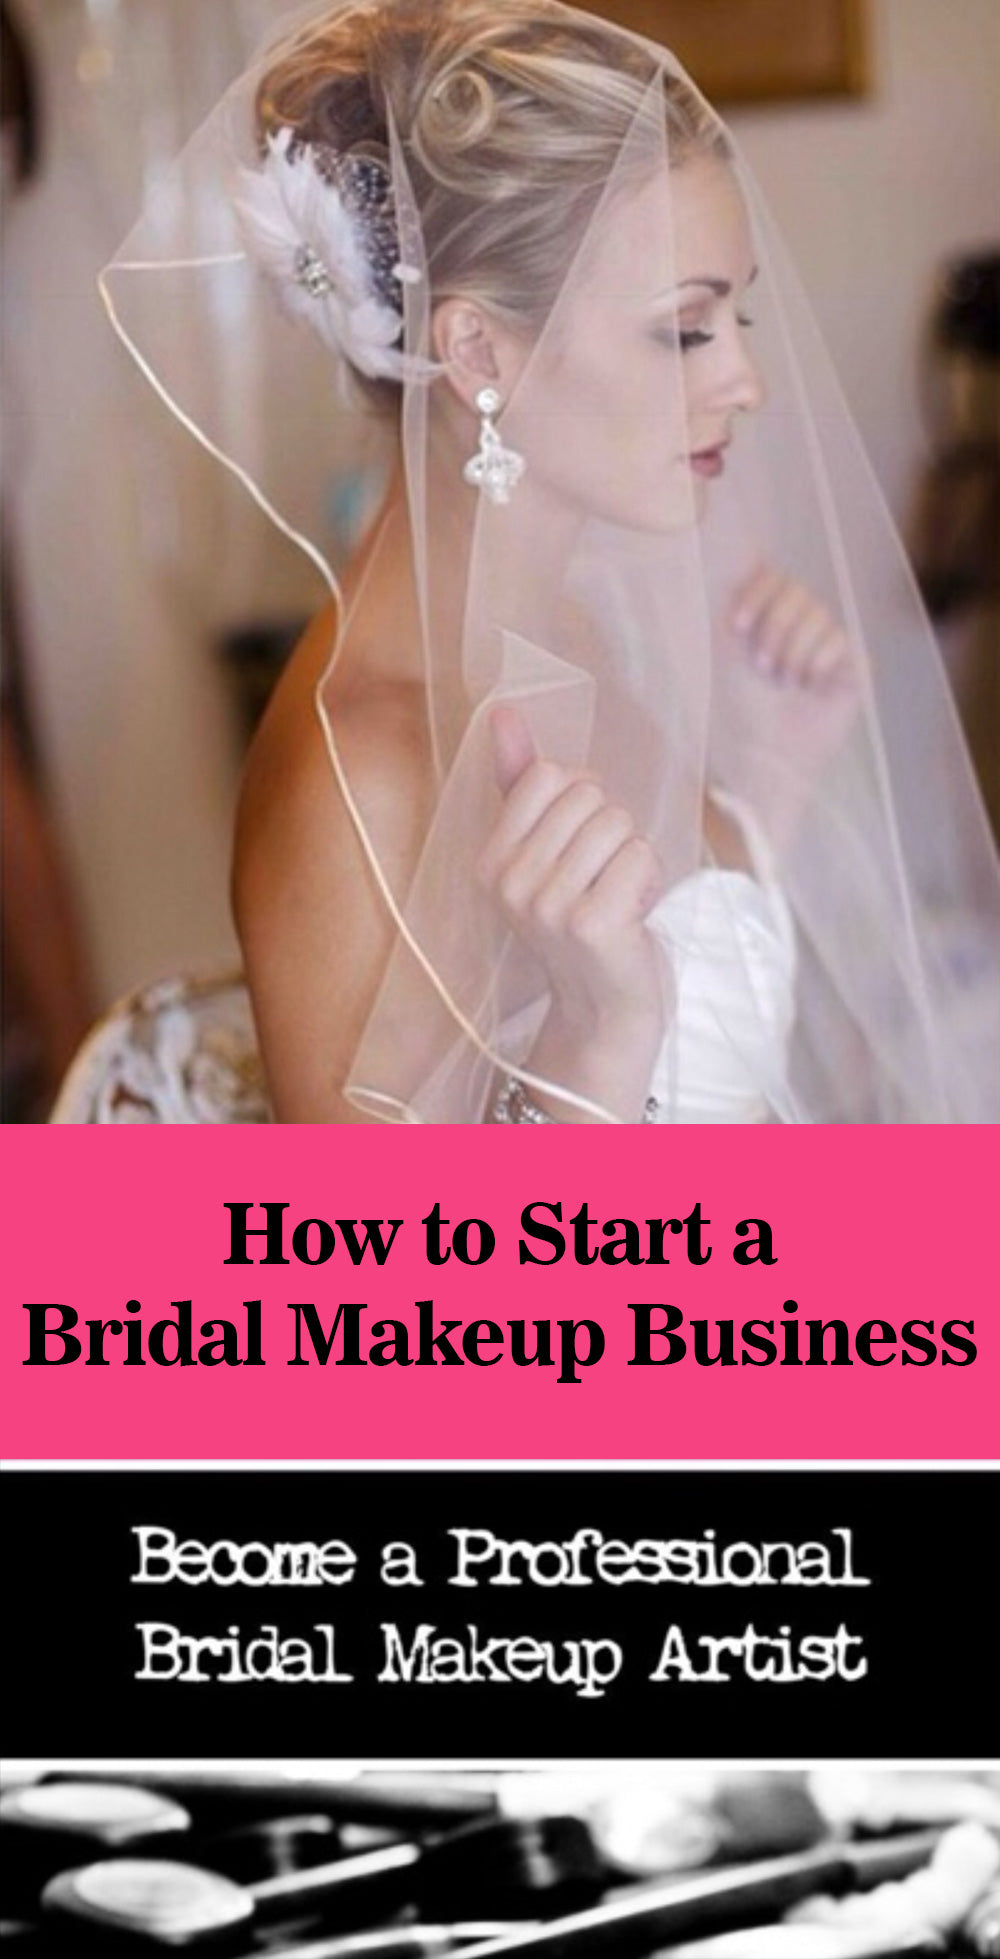 How to start a Bridal Makeup Business